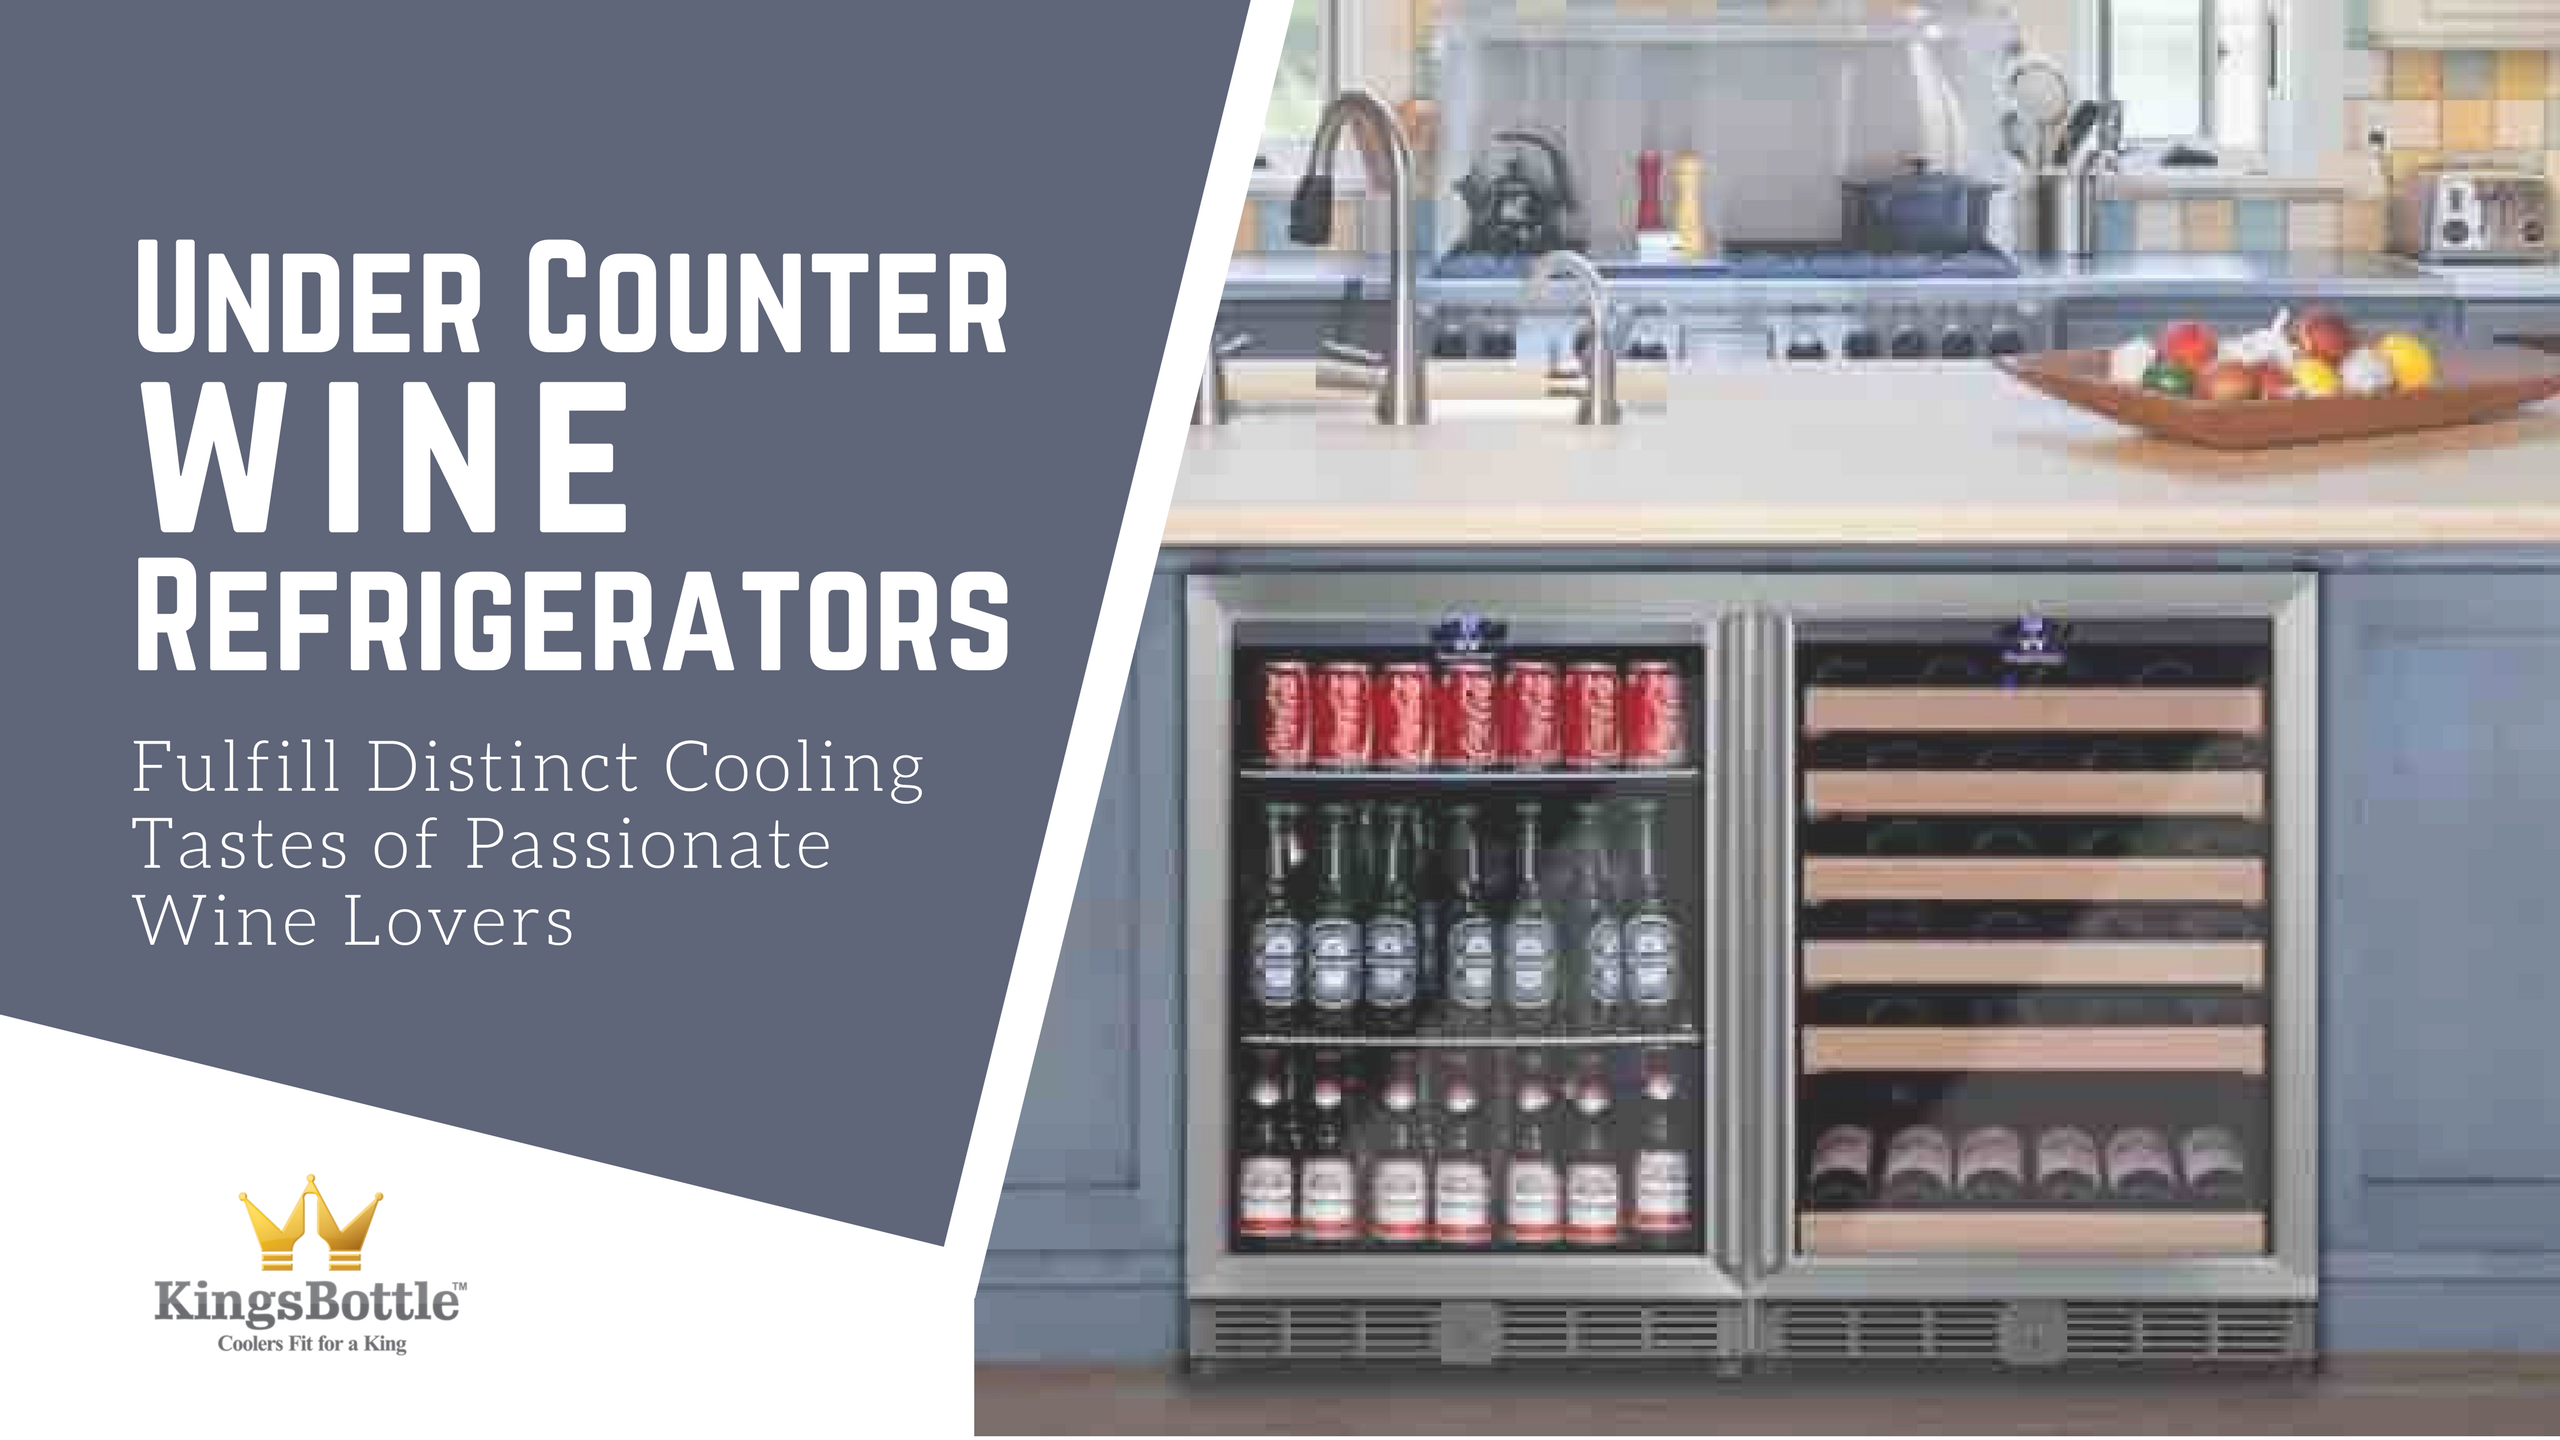 High Quality Undercounter Winerefrigerators To Fulfill Distinct Cooling Tastes Of Passionate Wine Lovers Kingsbo Wine Refrigerator Wine Coolers Drinks Wine